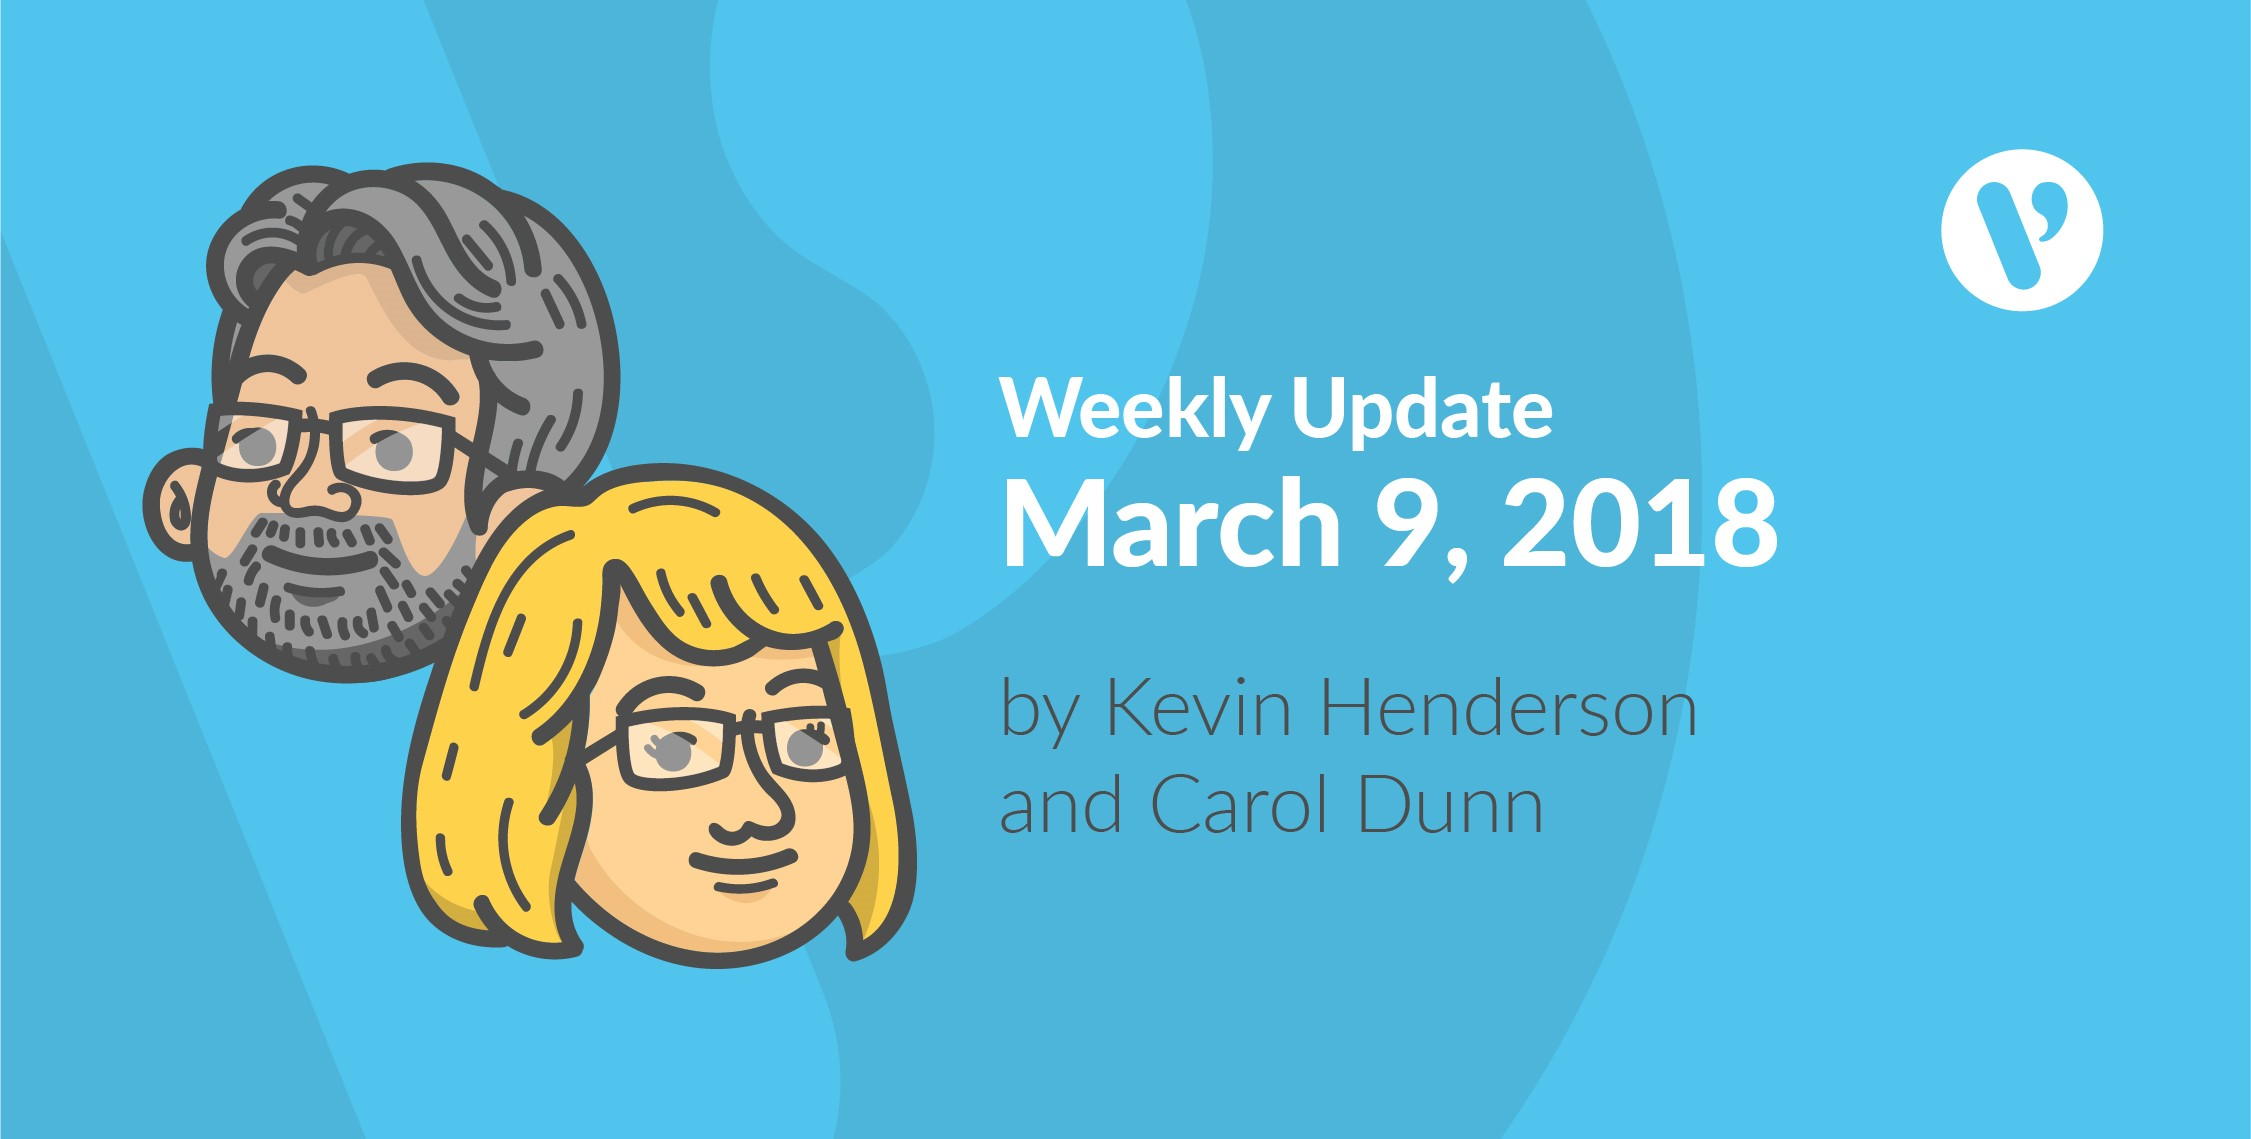 weekly update mar 9